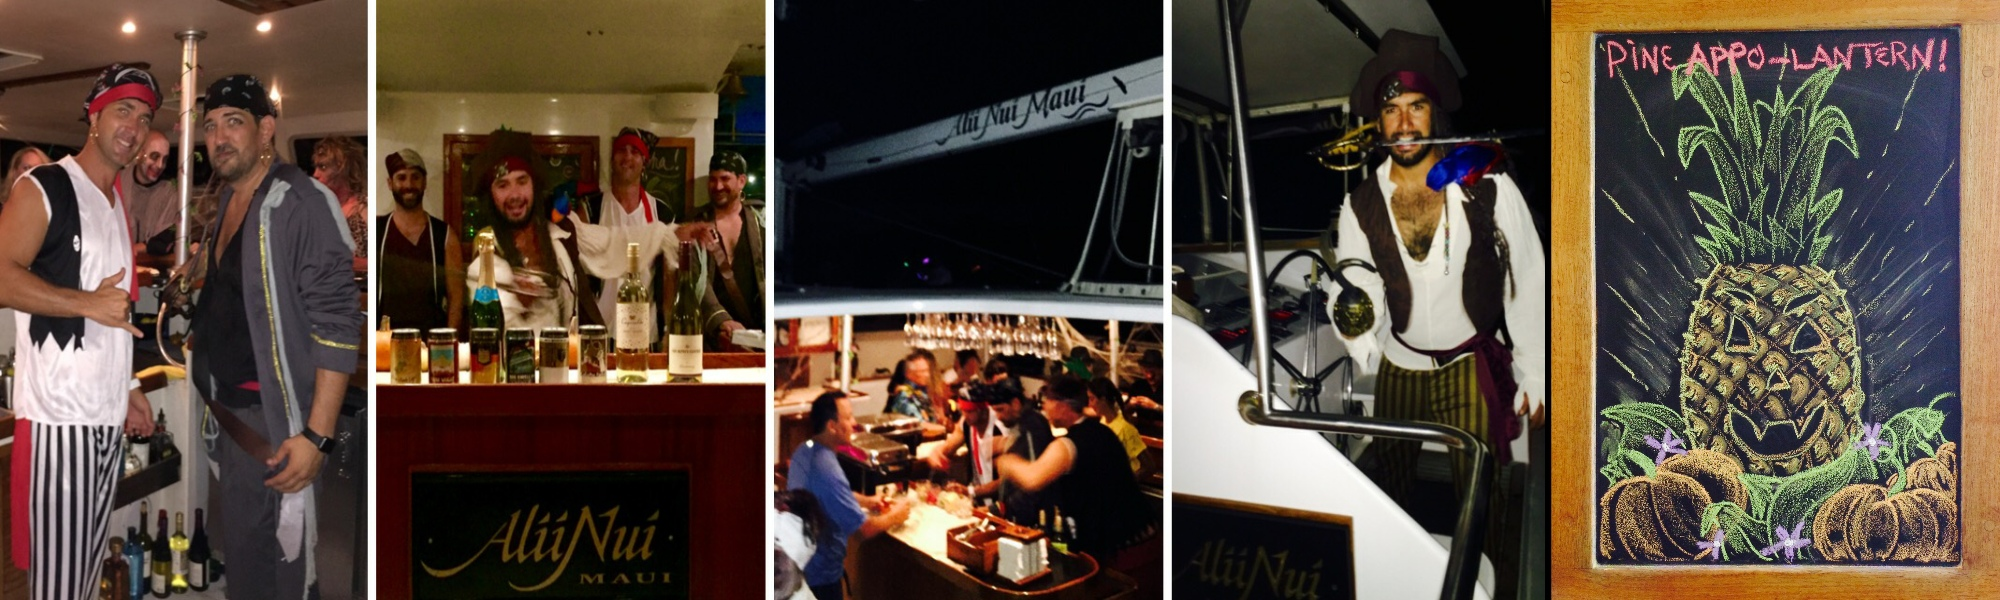 Alii Nui New Years Eve Dinner Sail on Maui